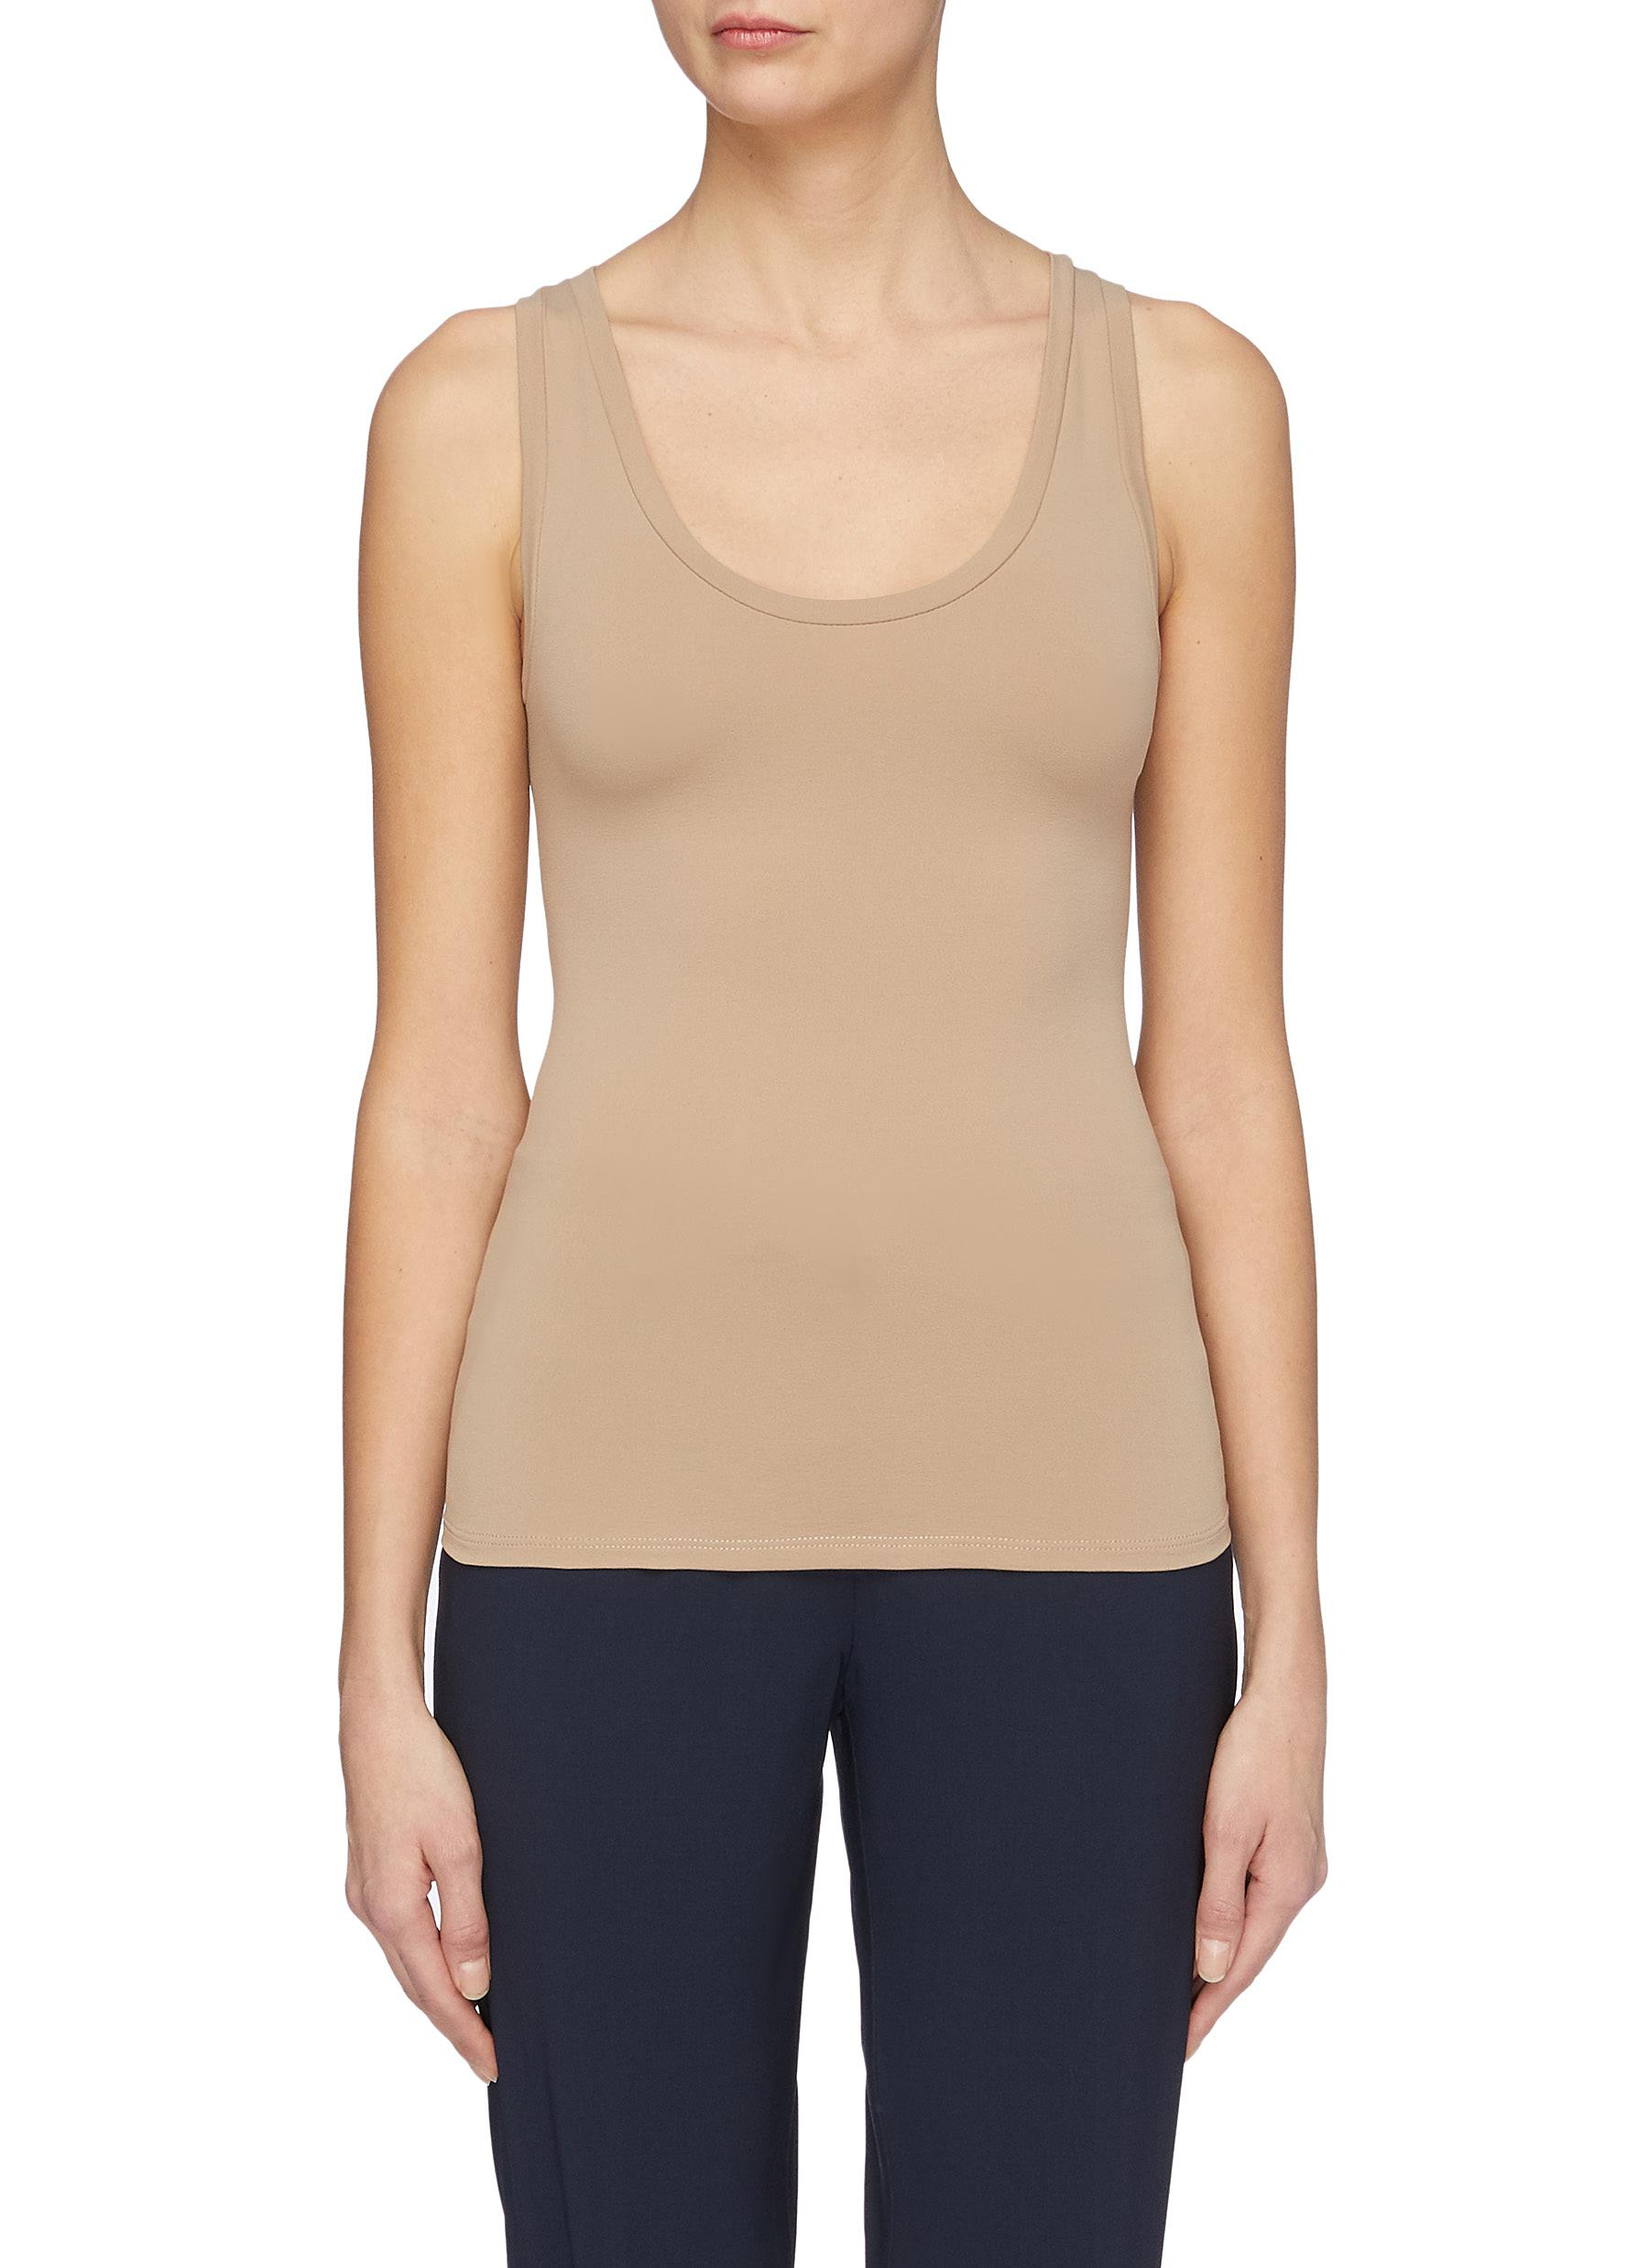 Tubular tank top by Theory